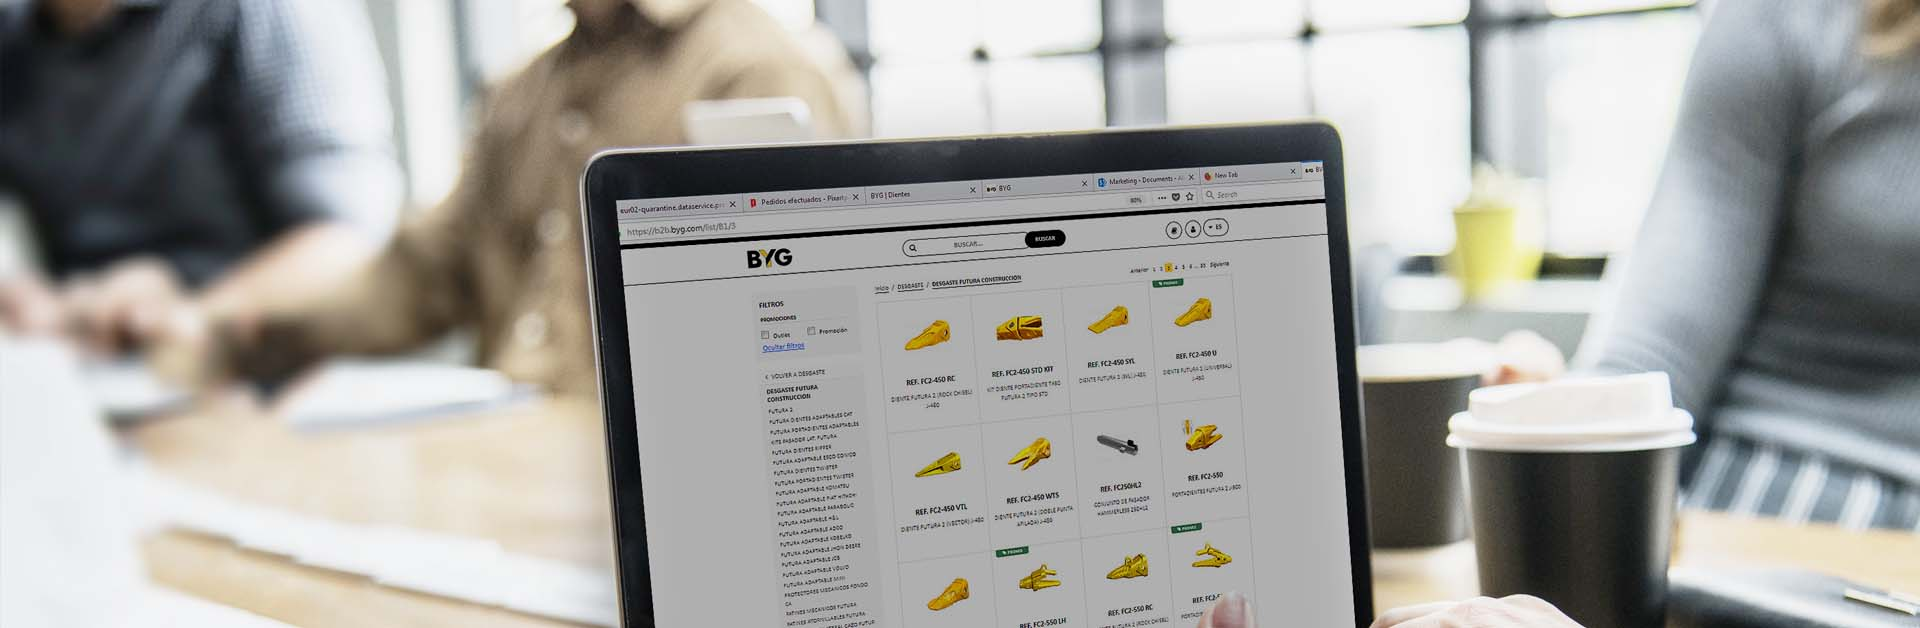 Byg Online What Is Byg On Line Byg Ground Engaging Tools Experts